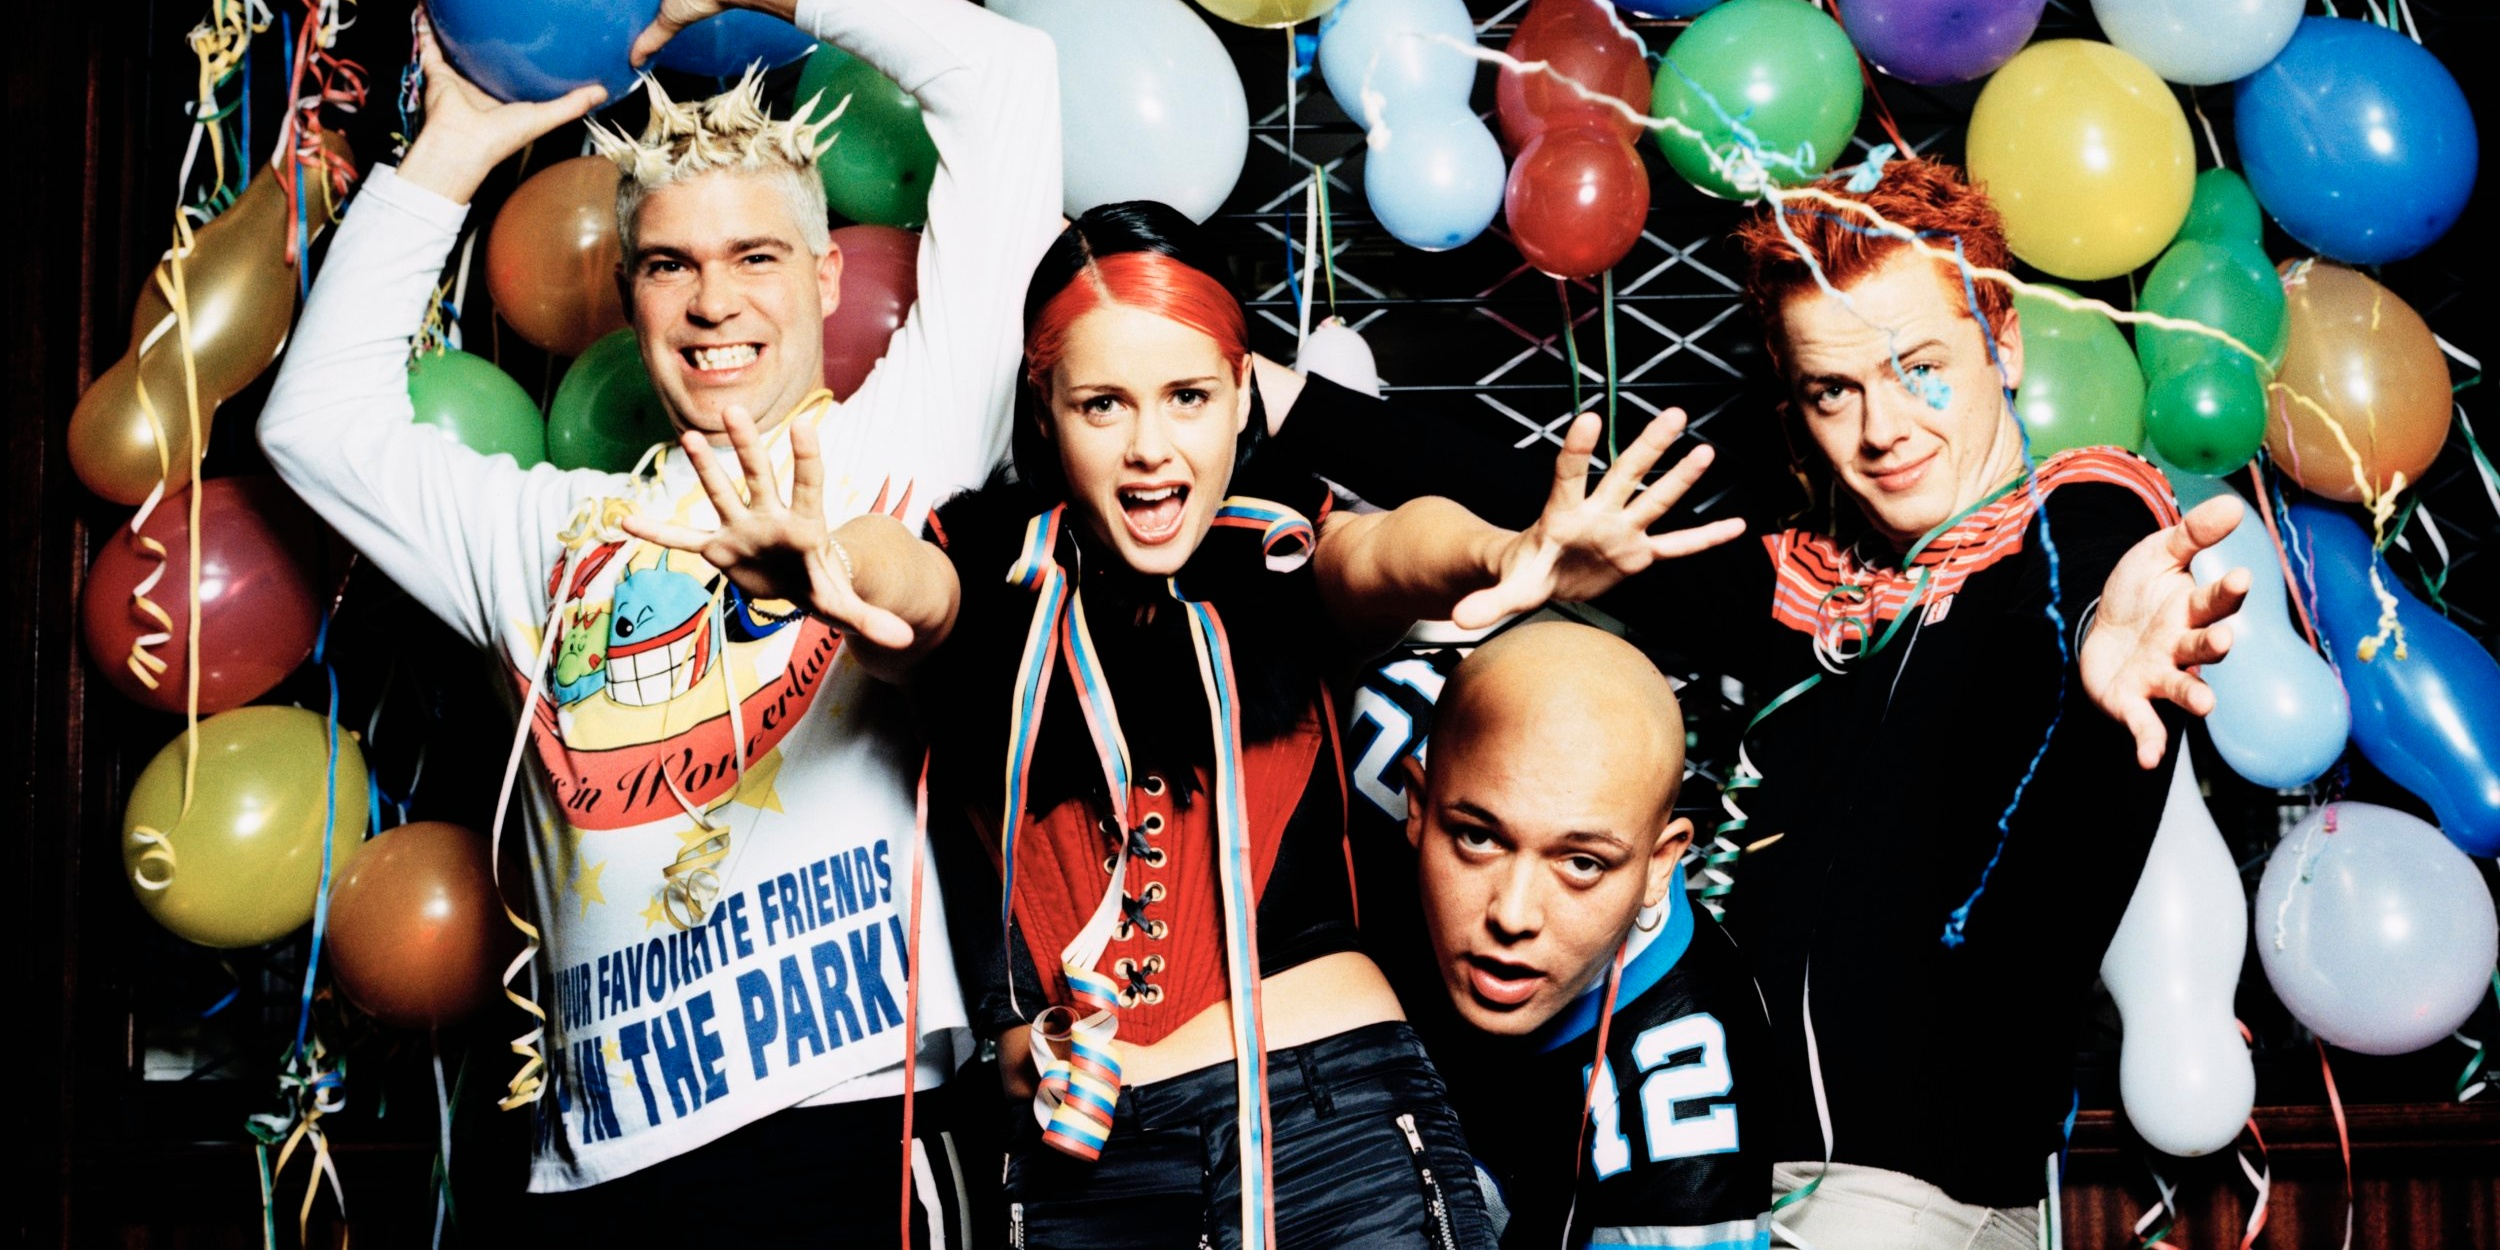 Singaporeans went totally nuts for Aqua in 1999 at their first concert here